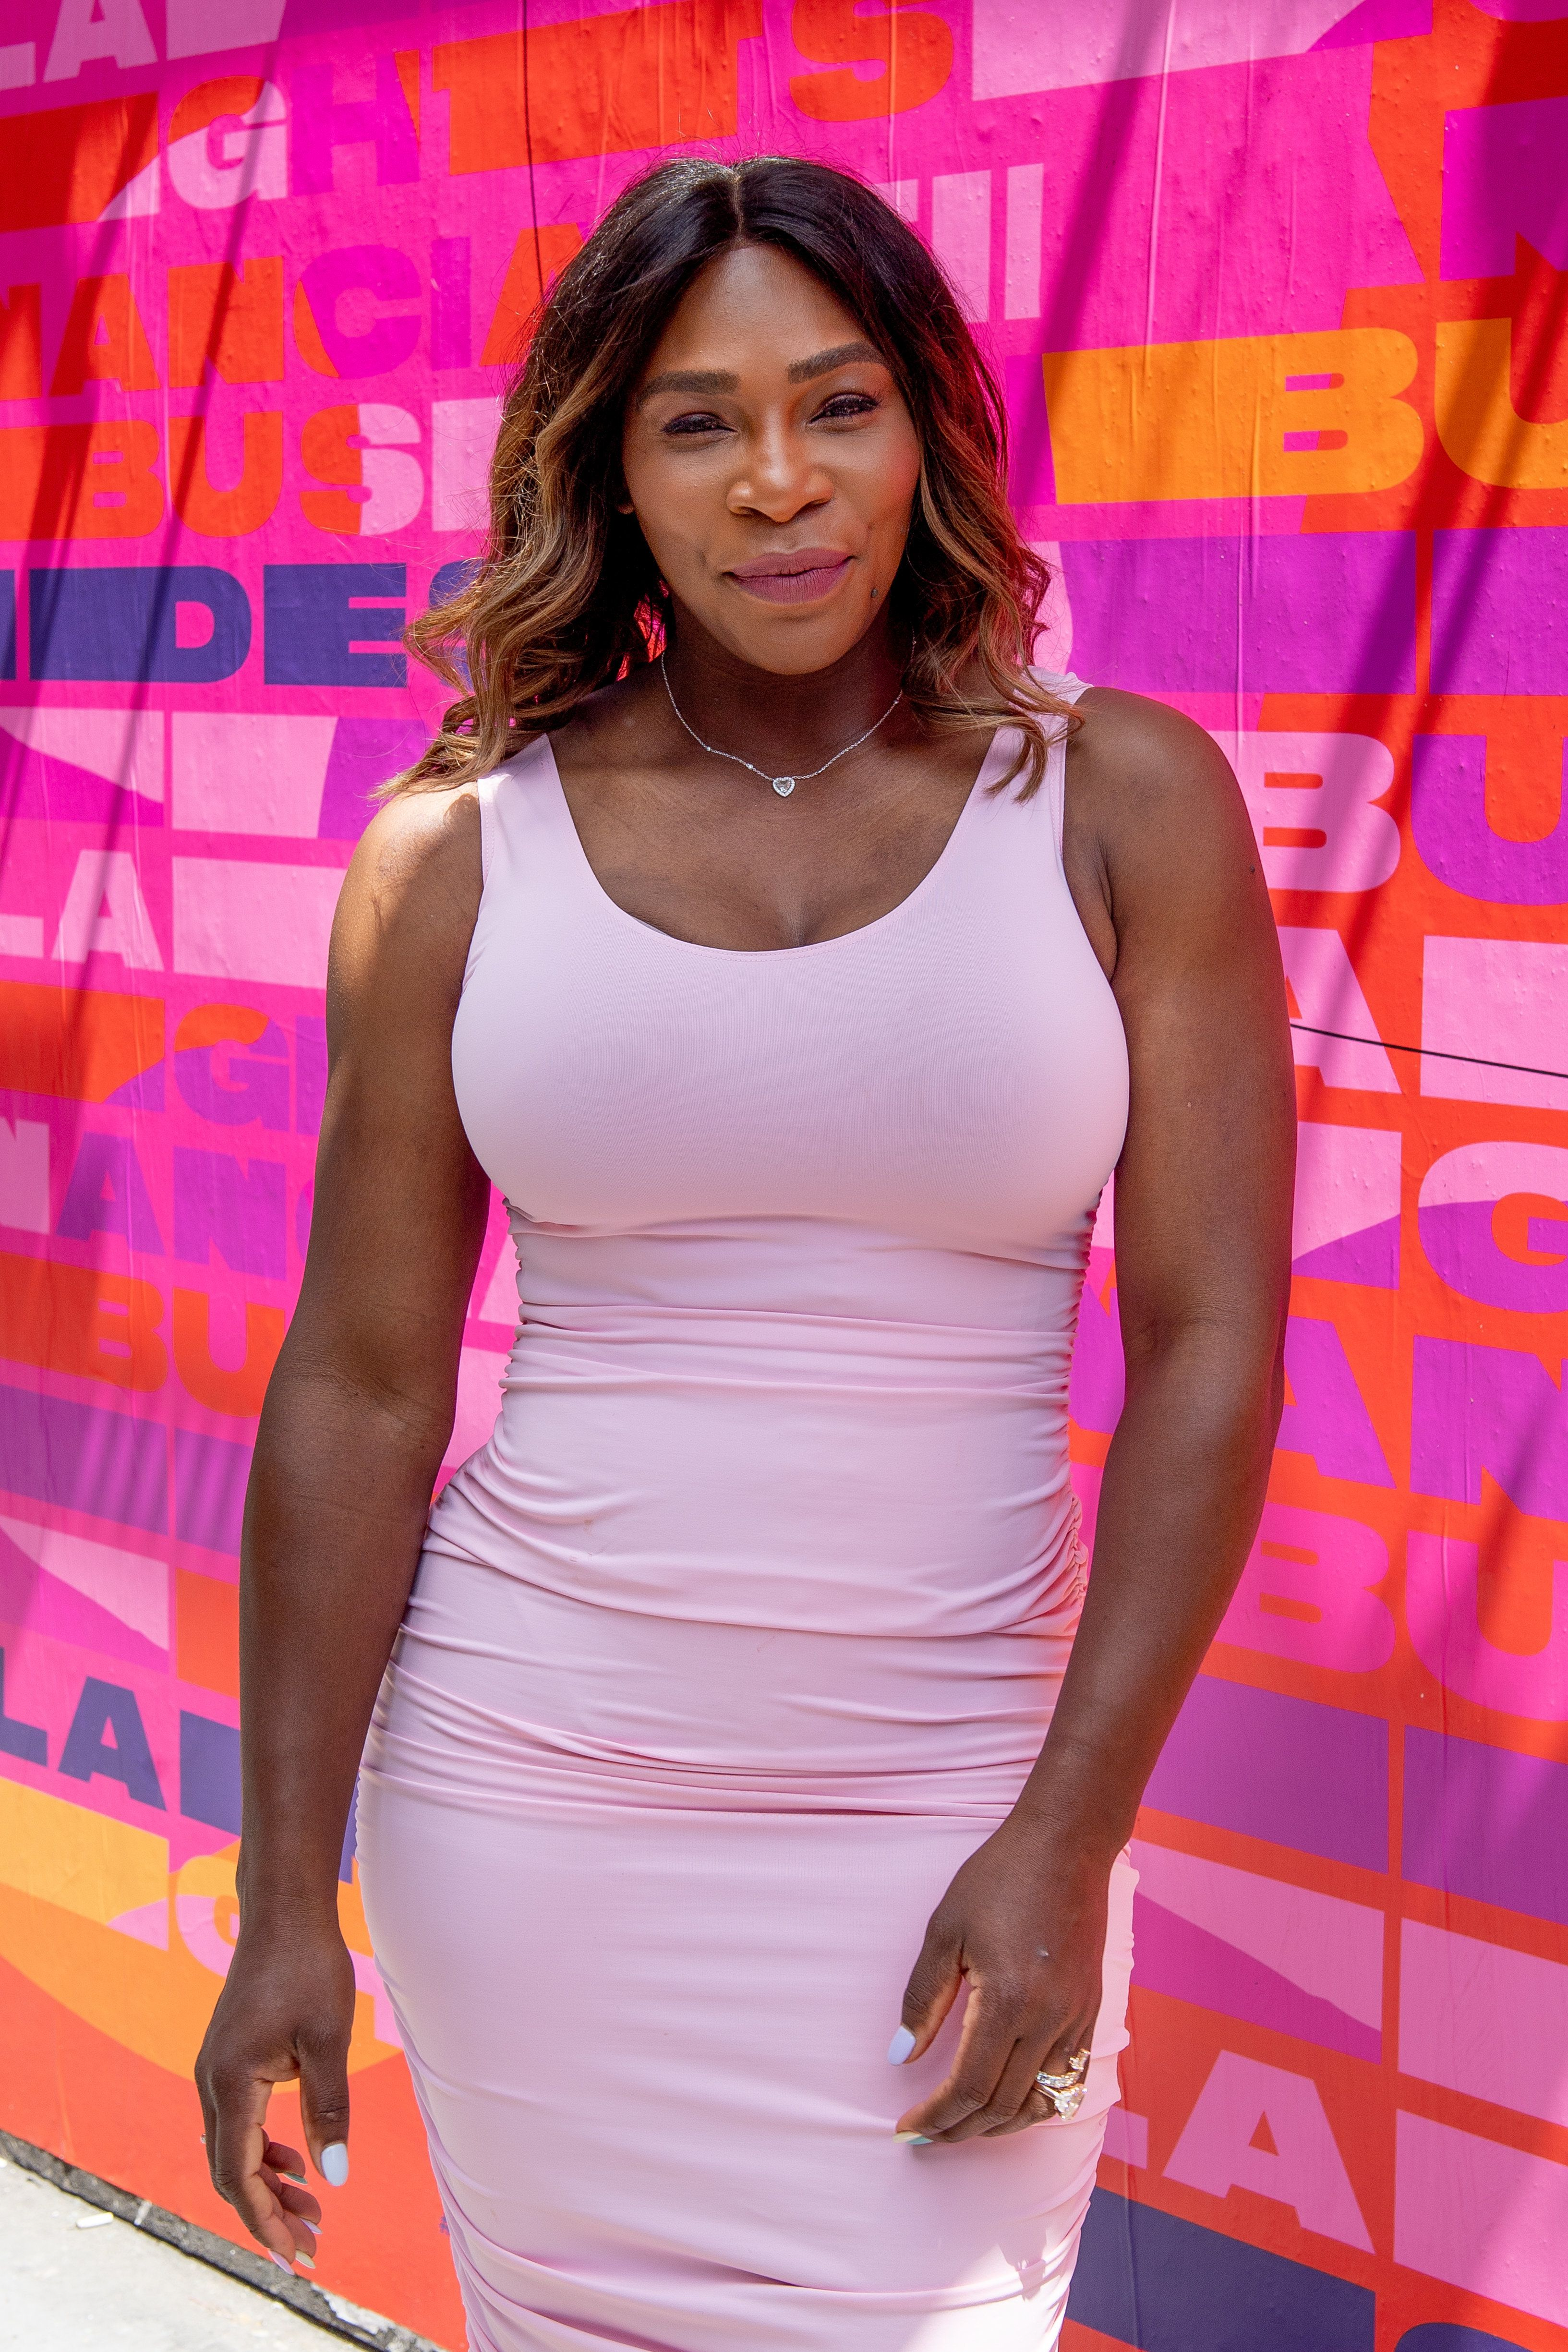 NEW YORK, NY - JUNE 20:  Serena Williams stands next to Isabel Castillo Guijarro's mural during the Allstate foundation Purple Purse and Serena Williams launch national street art campaign to raise domestic violence awareness on June 20, 2018 in New York City.  (Photo by Roy Rochlin/Getty Images)